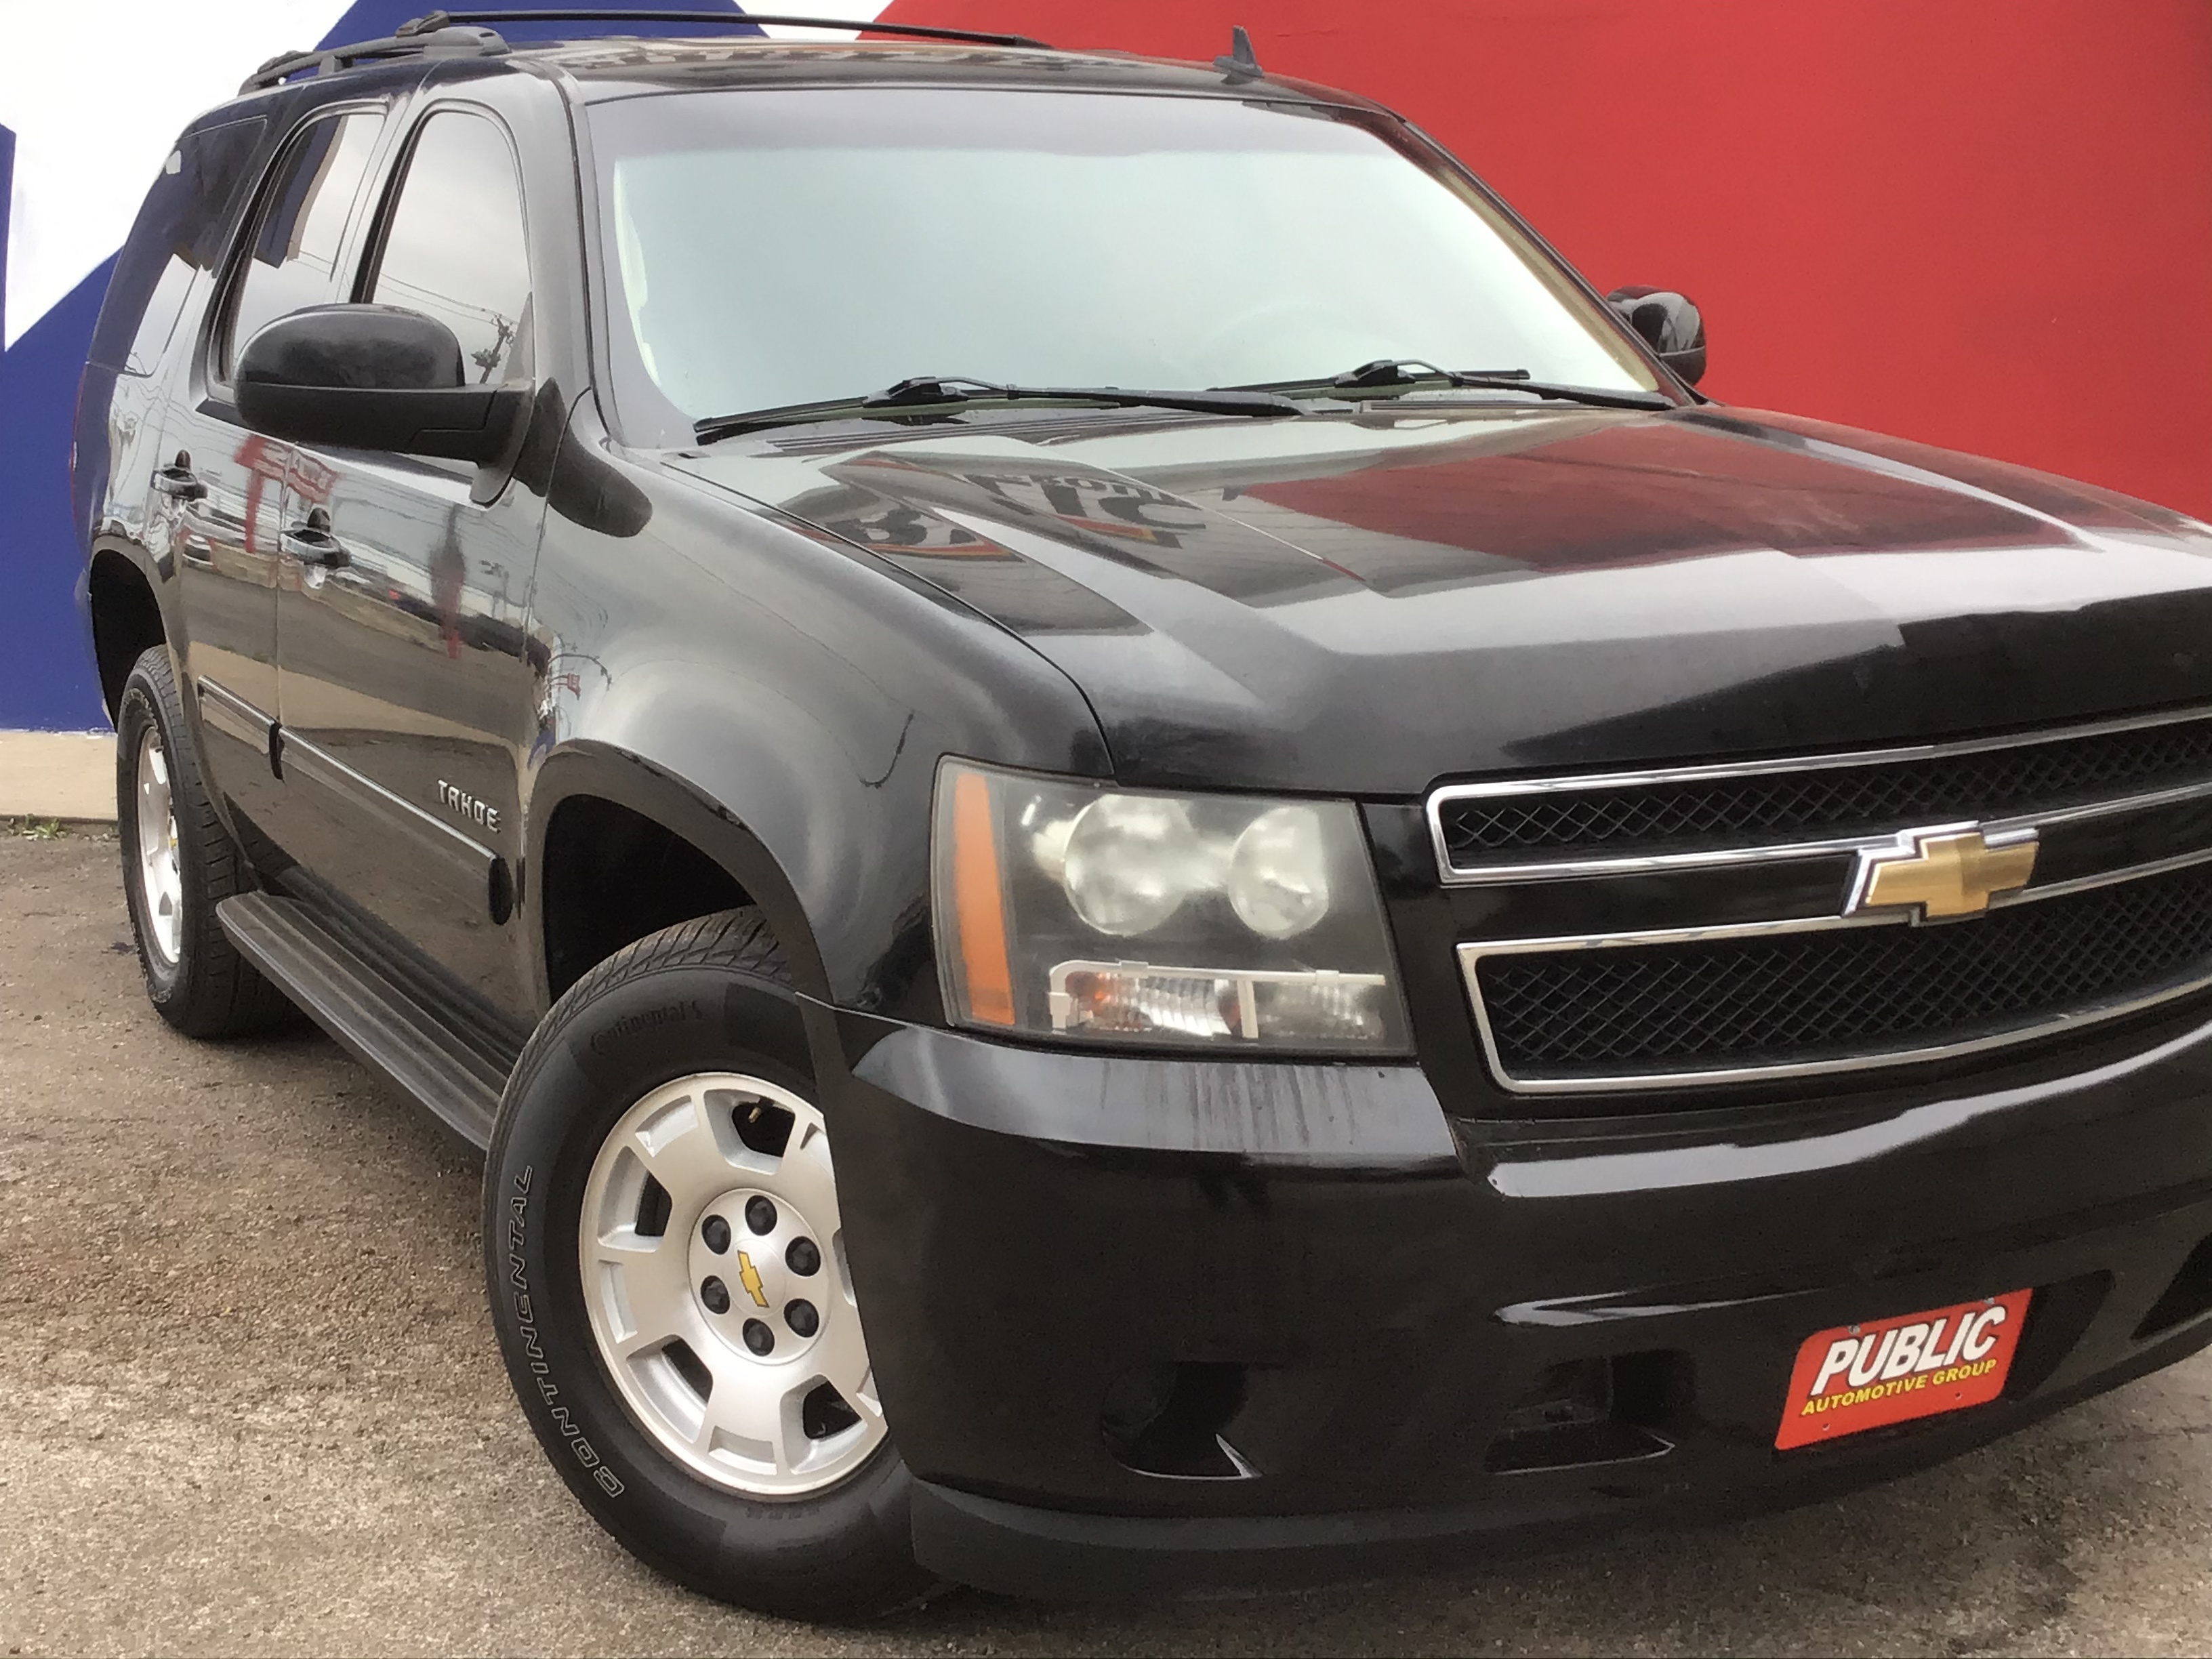 used vehicle - SUV CHEVROLET TAHOE 2011